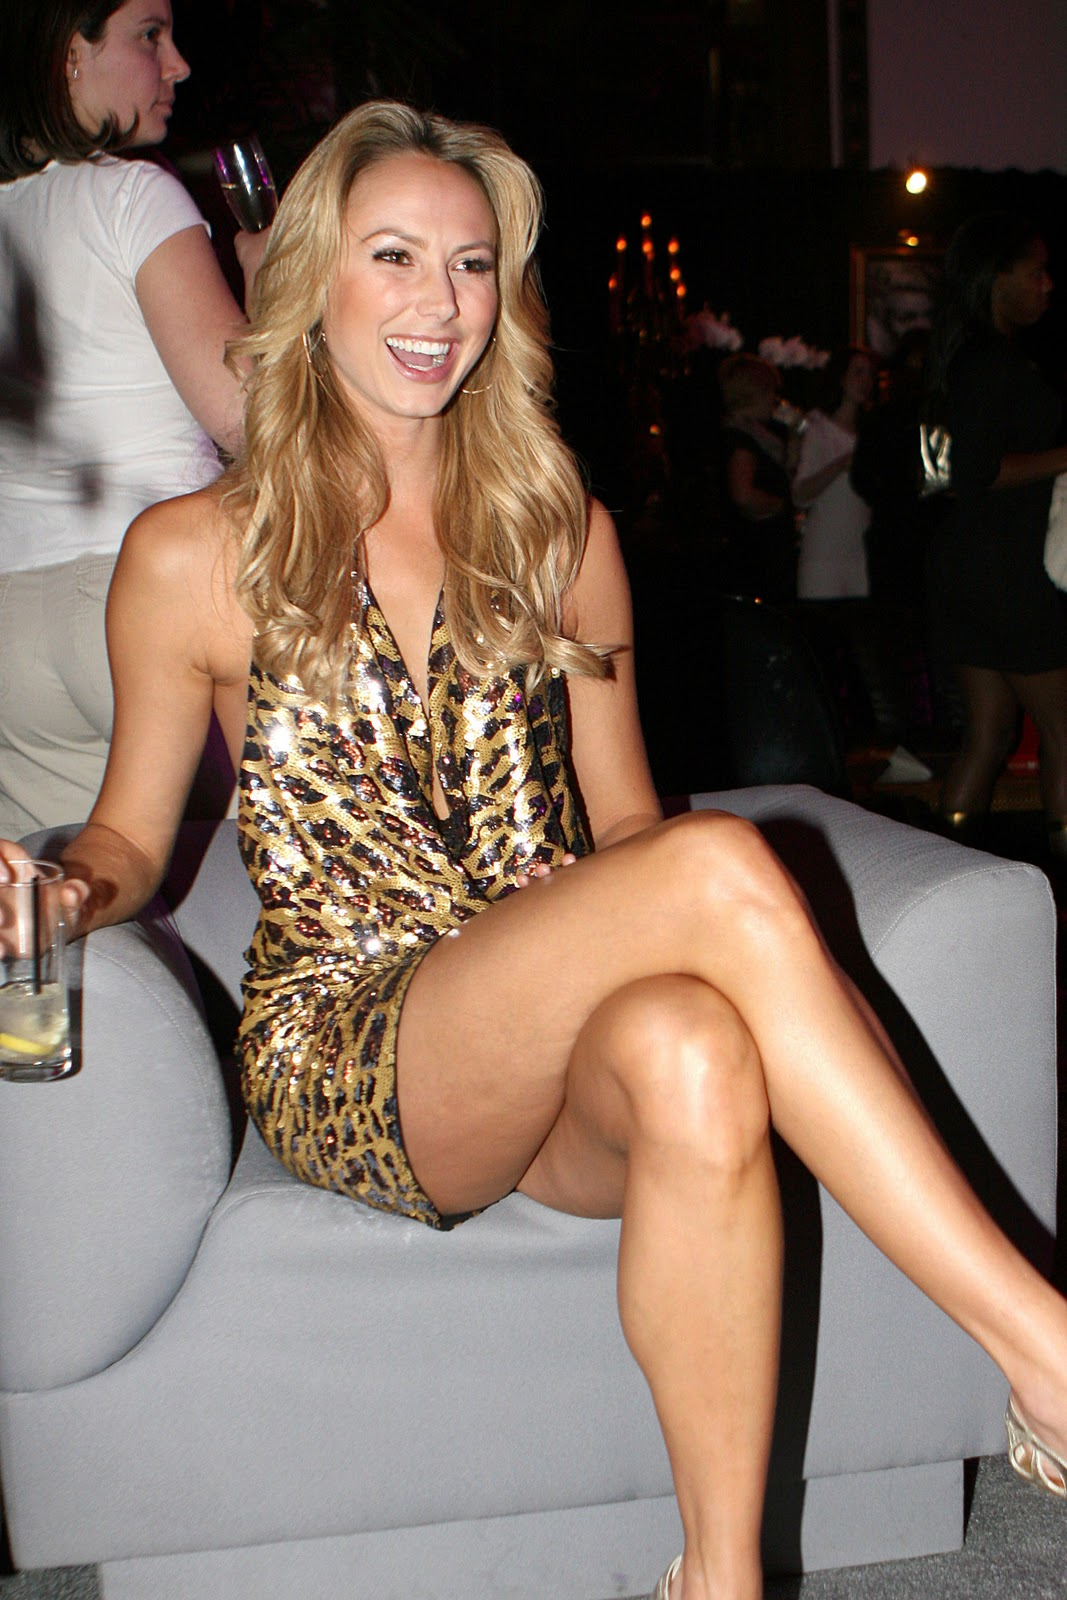 Hot crossed legs photos